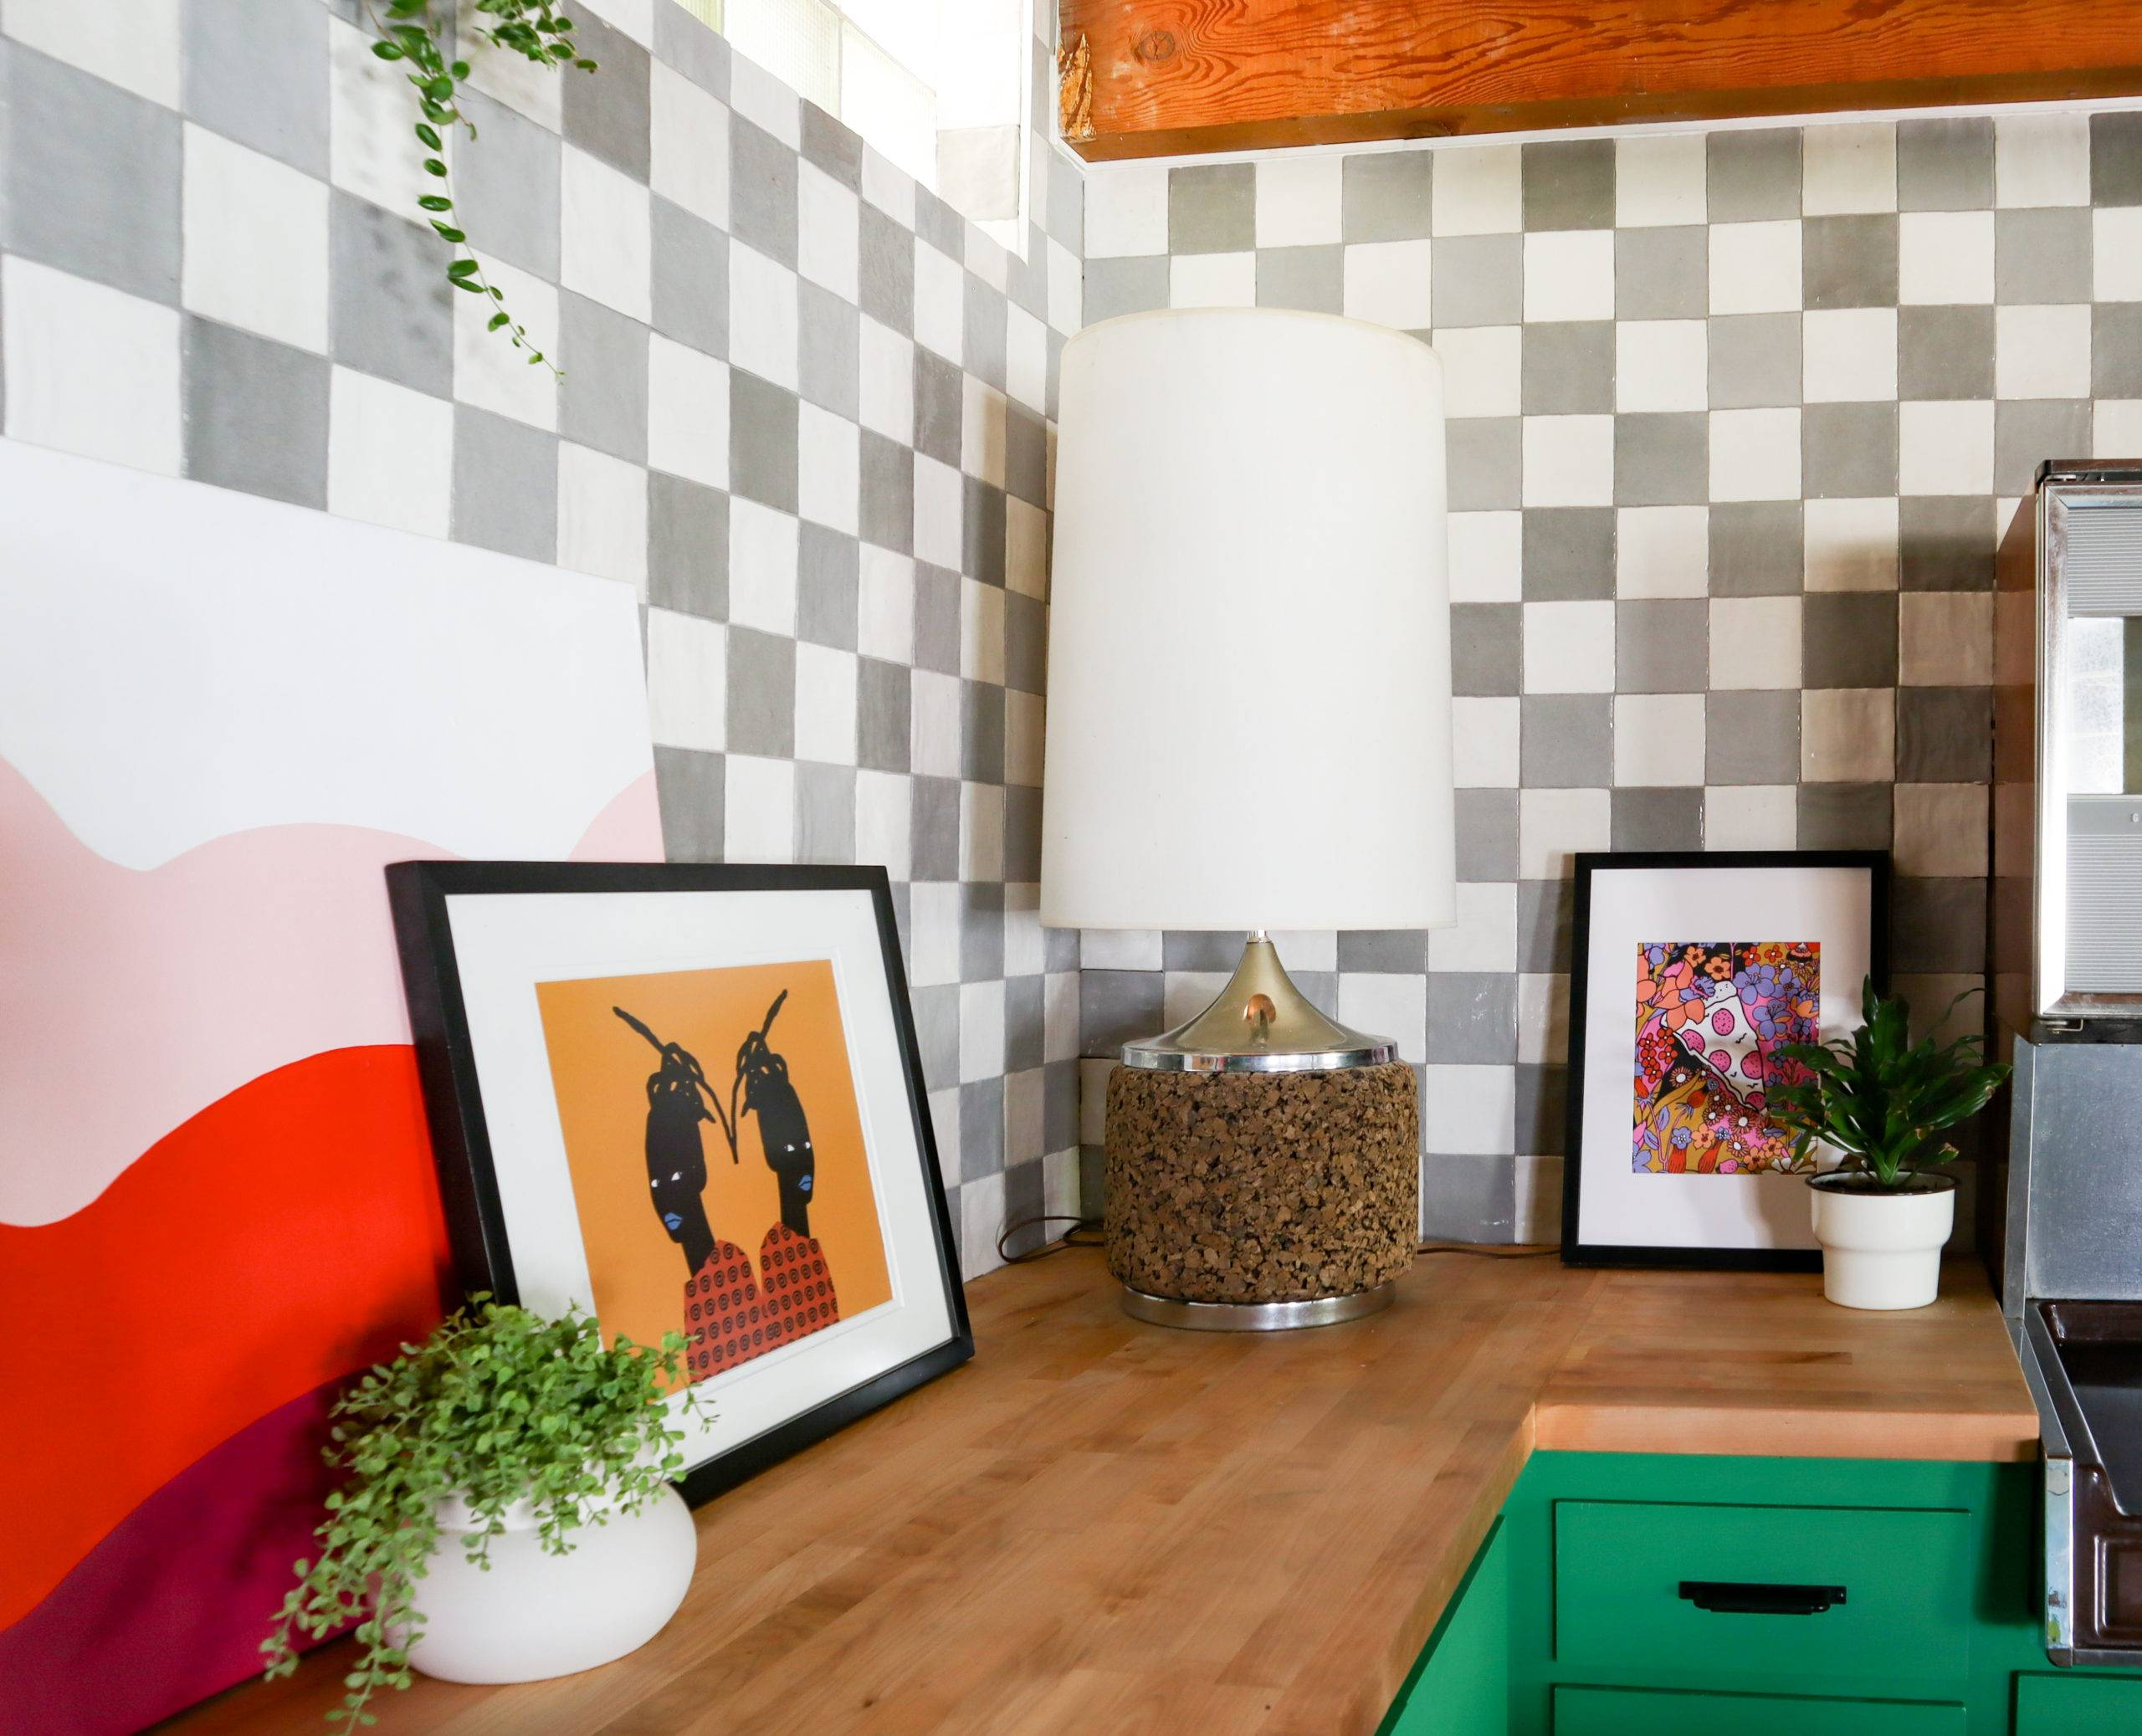 white and grey checkerboard tile backsplash with green cabinets